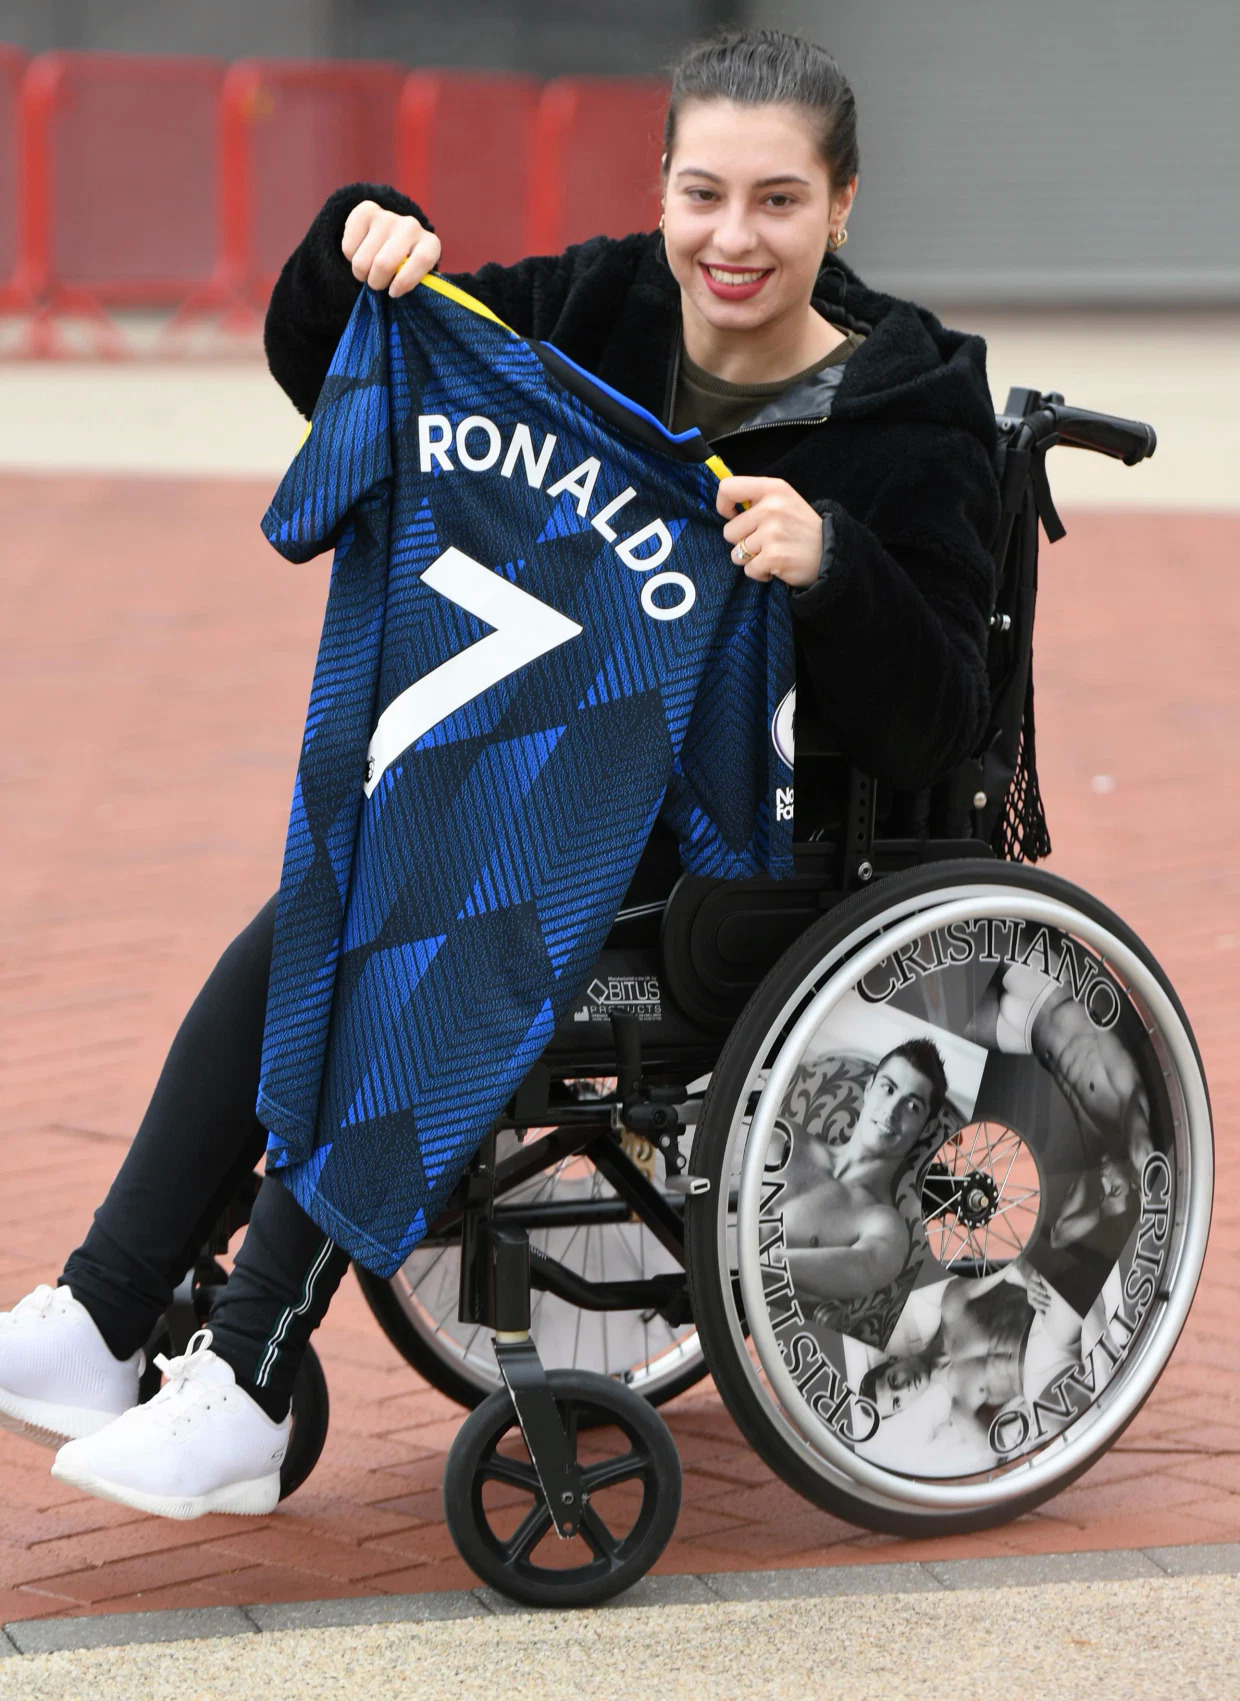 A Ronaldo fan rejoices with the idol's number 7 shirt bought at Old Trafford on September 4.